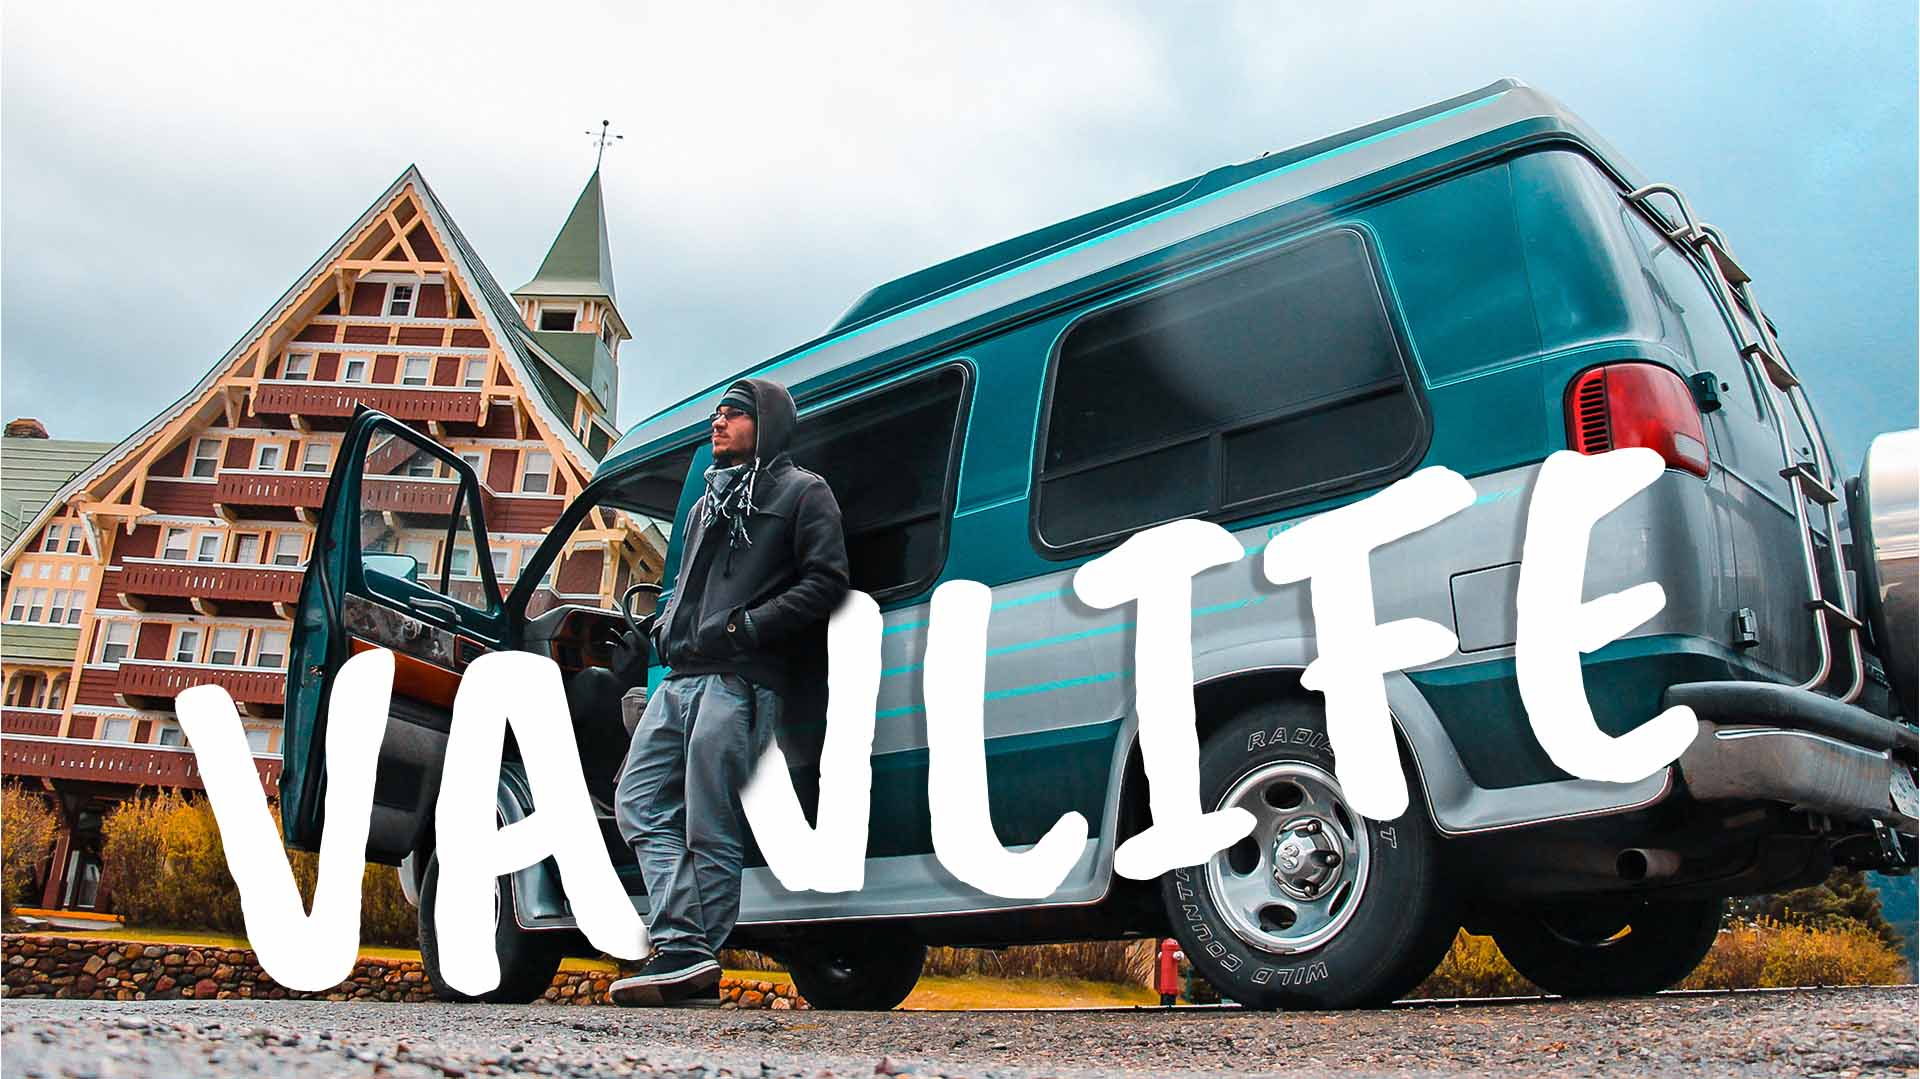 Vanlife top 10 Tipps - Cover